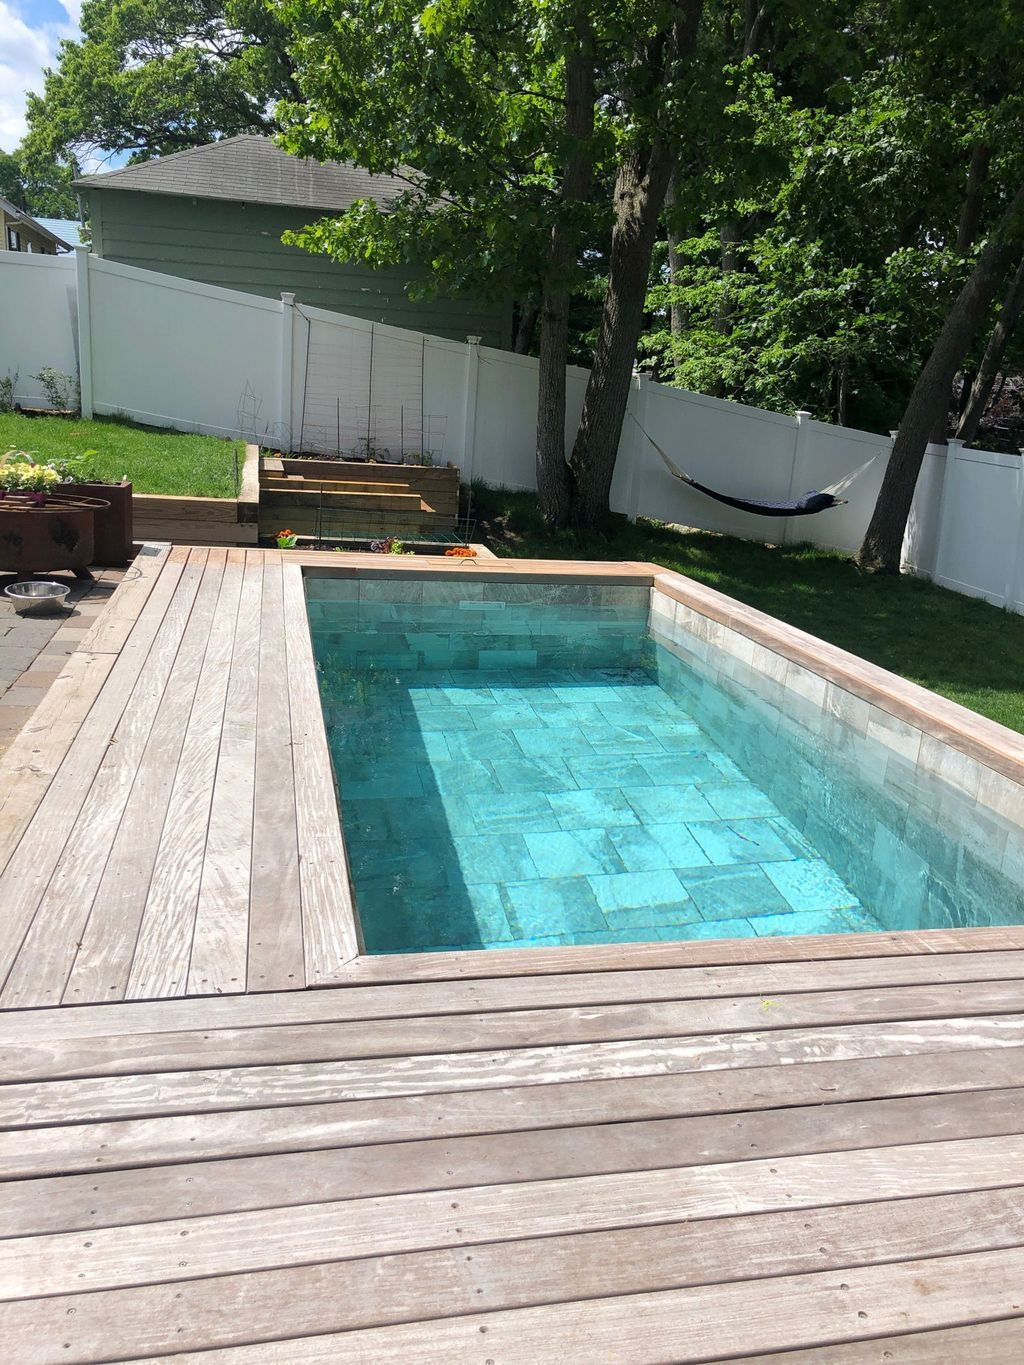 32 Admirable Small Swimming Pool Design On Deck Ideas Small Swimming Pools Swimming Pool Landscaping Small Pool Design